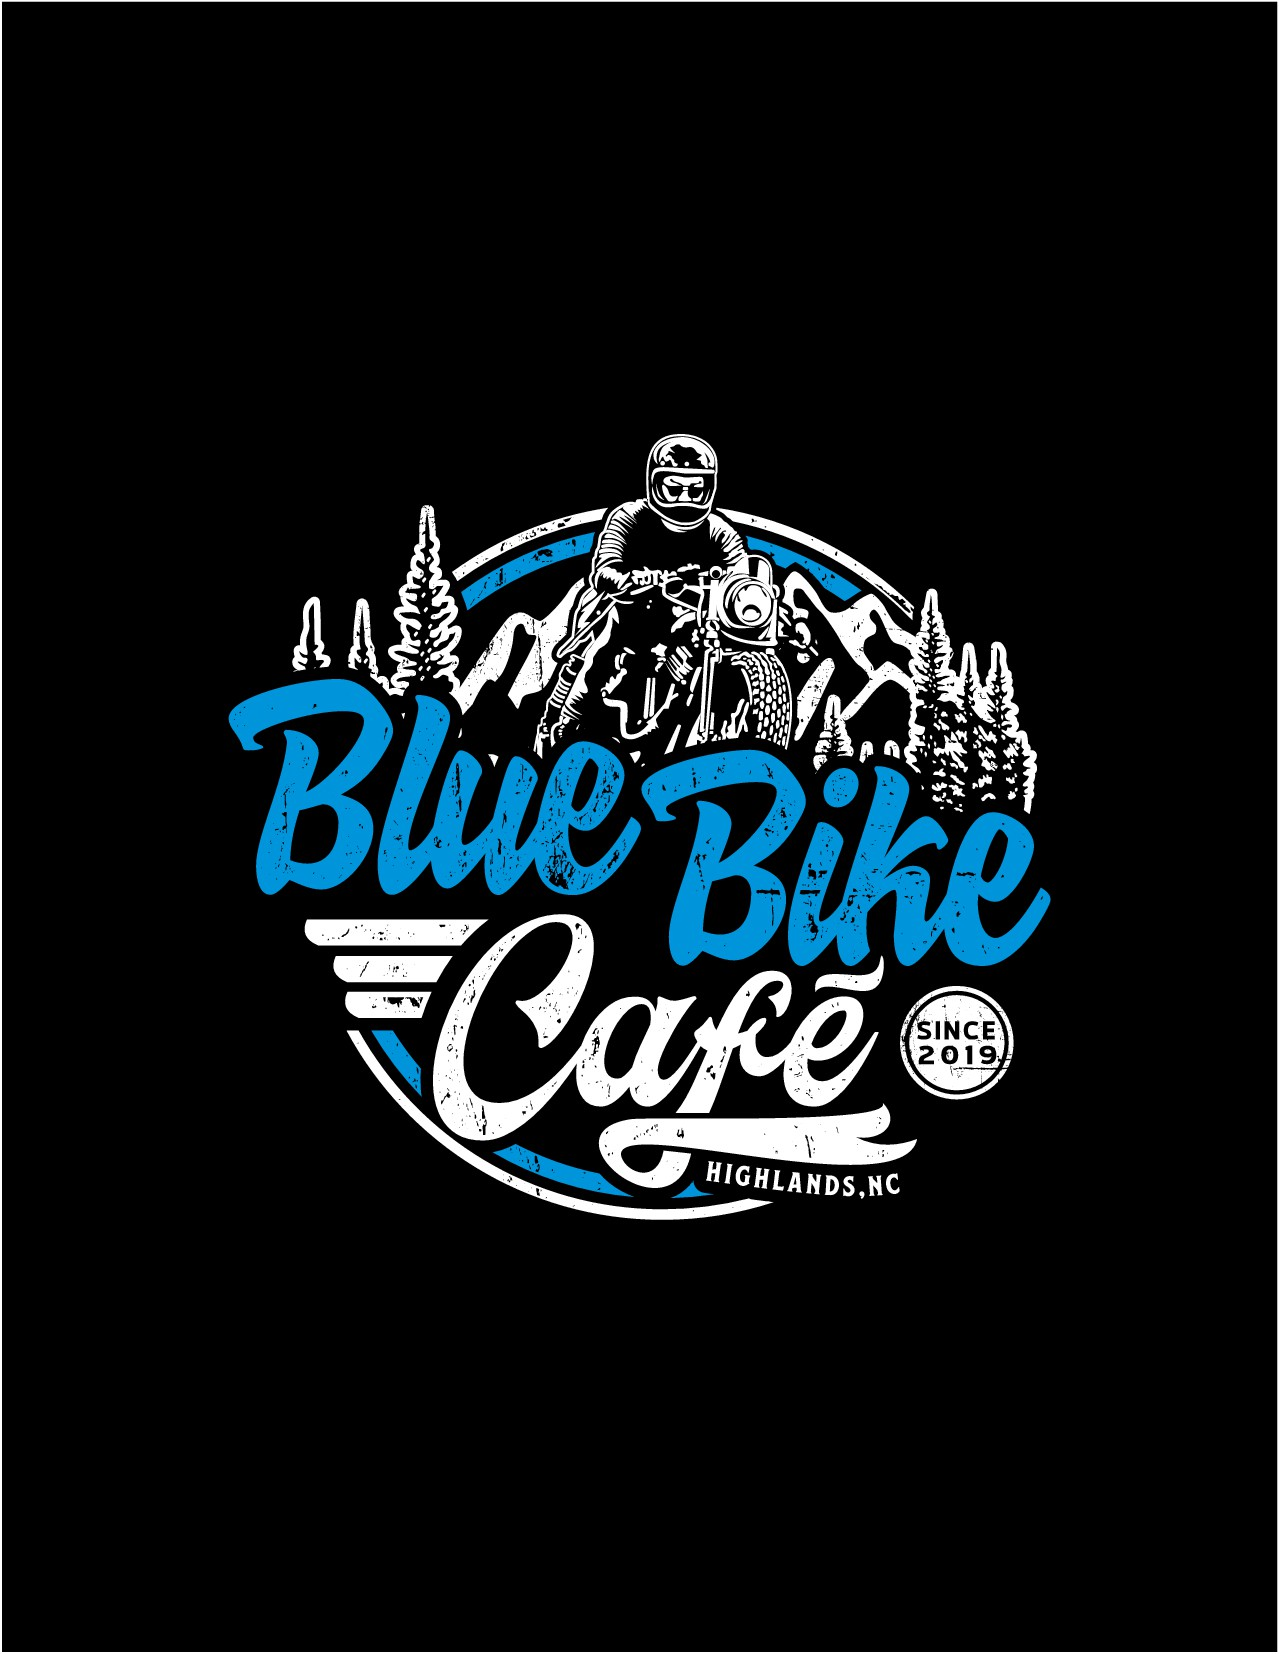 Vintage/Retro Cafe Racer T-Shirt for the Blue Bike Cafe!!